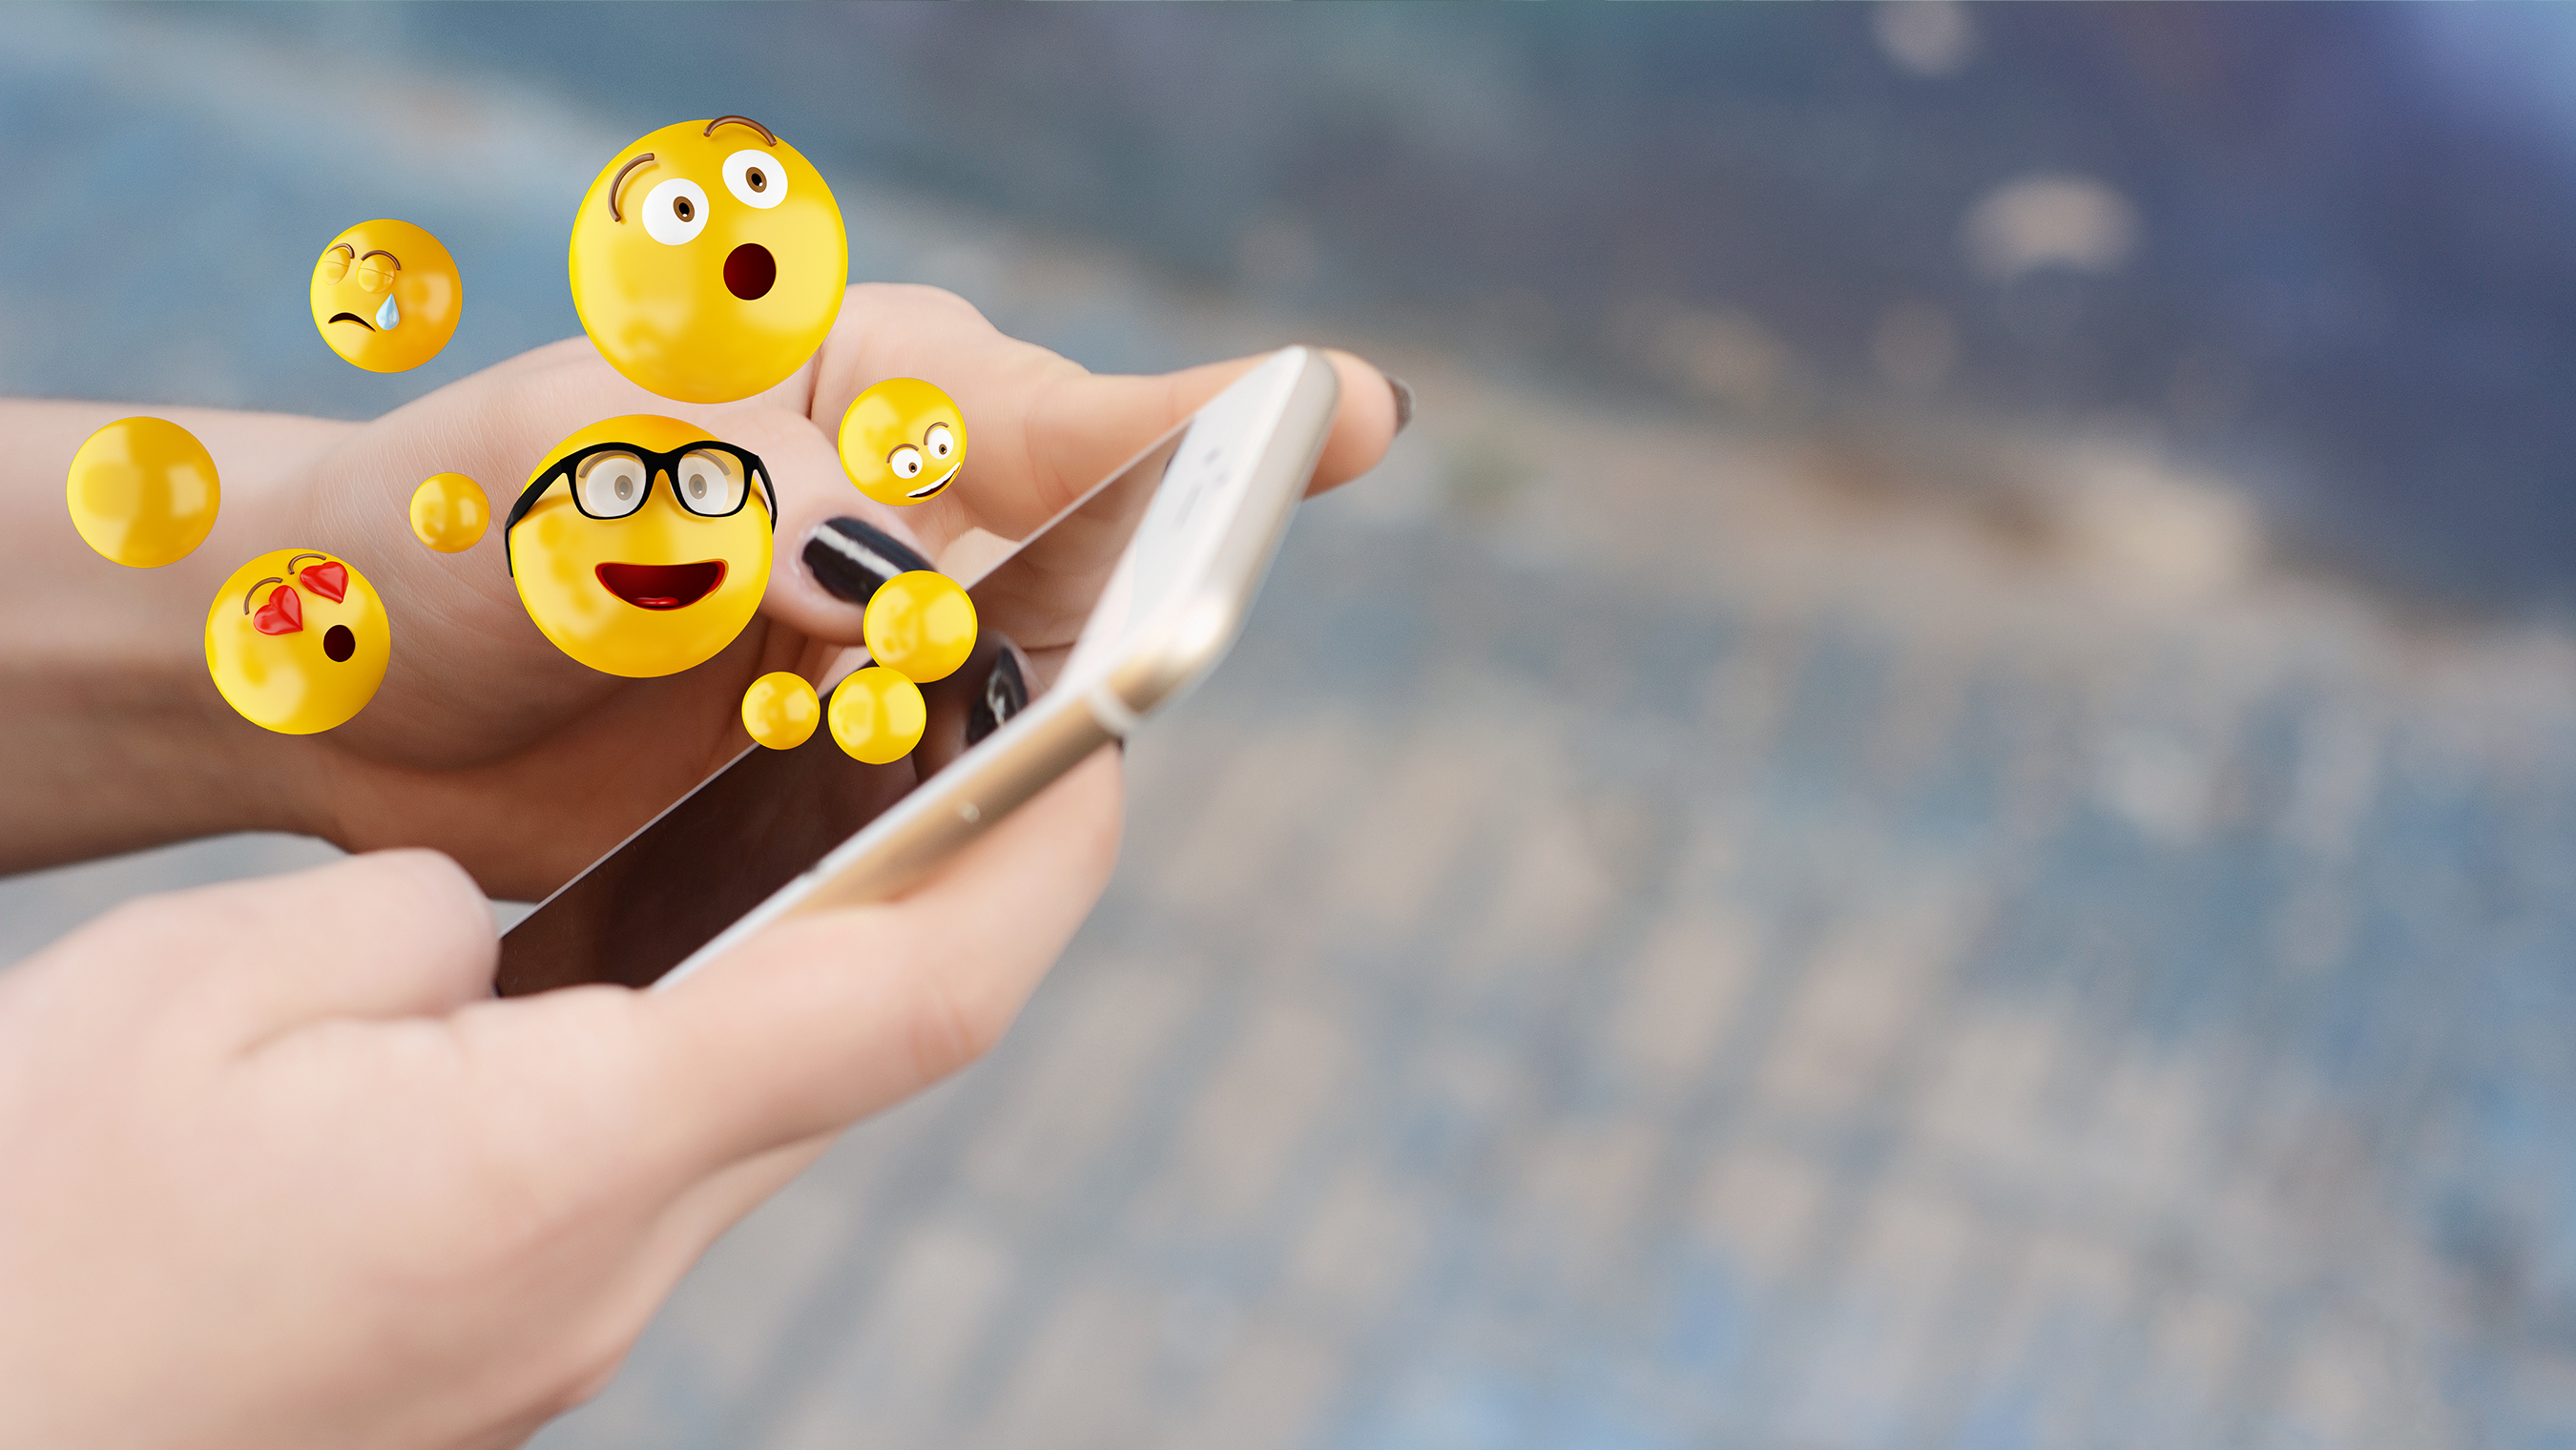 Why You Should be Using Emojis in Your Business Communications